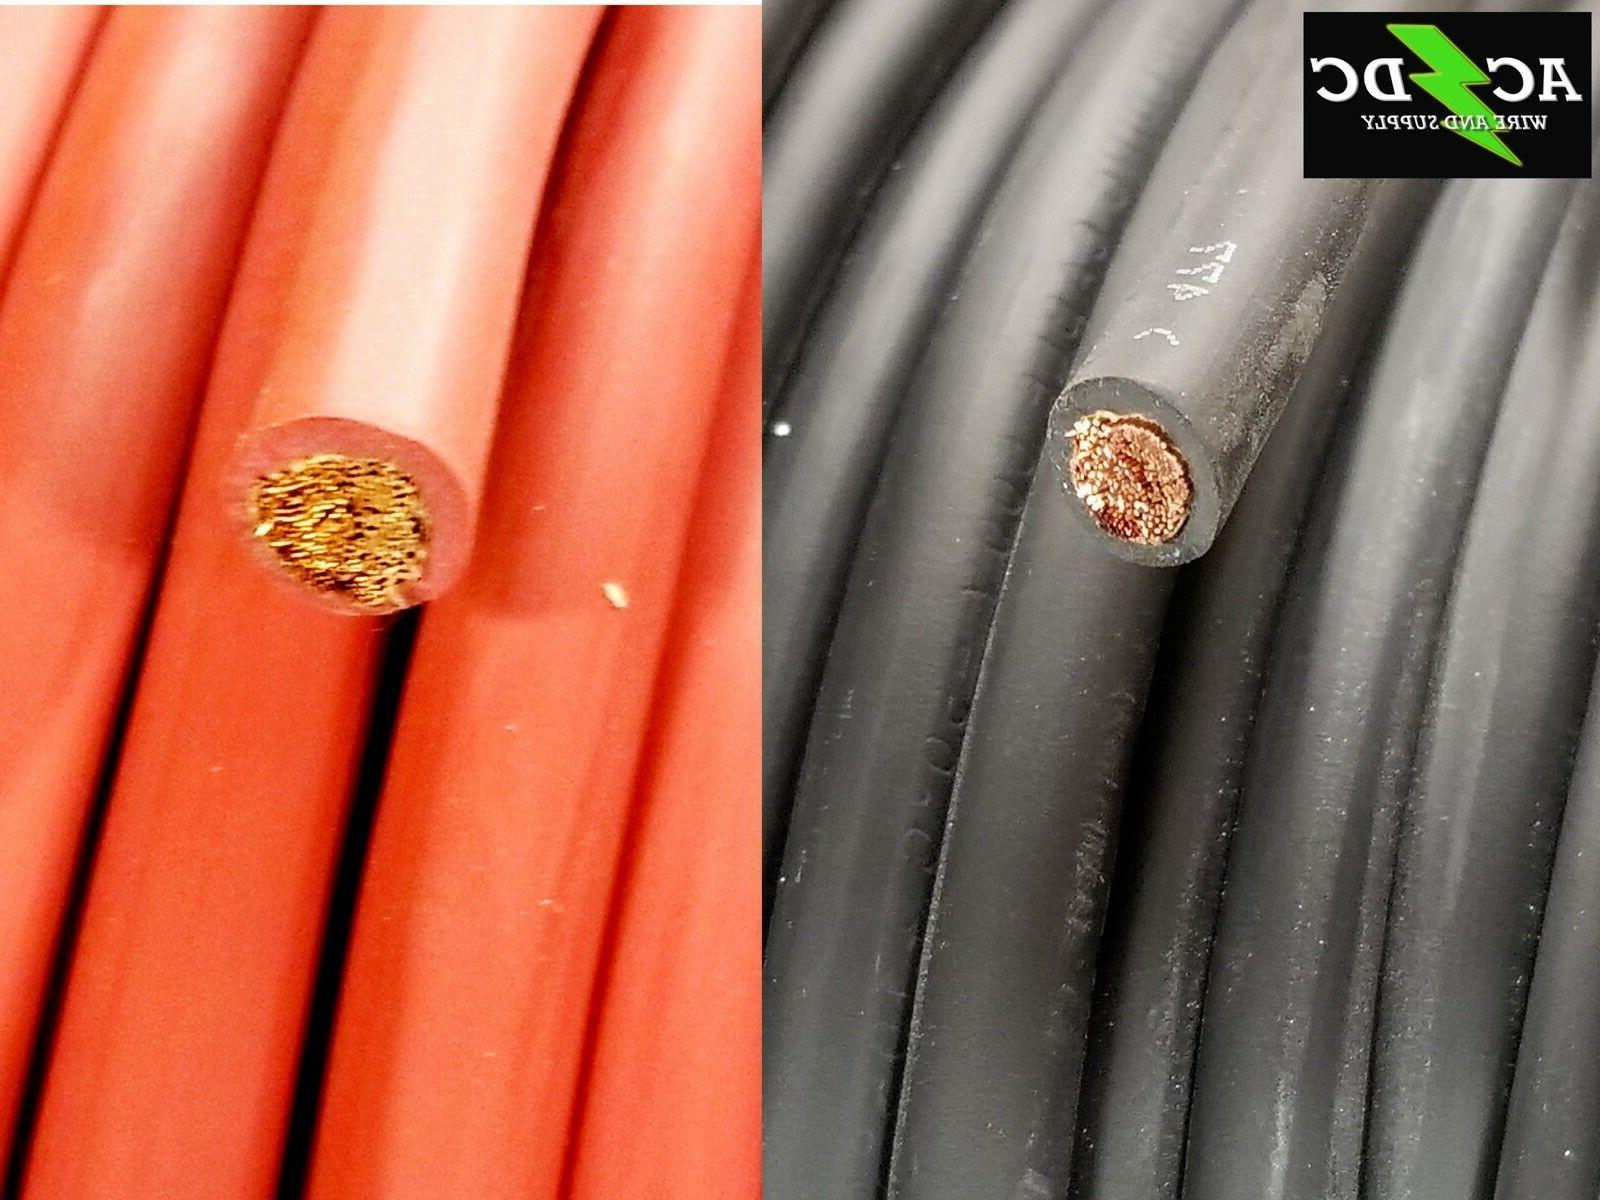 2 gauge awg welding lead and car